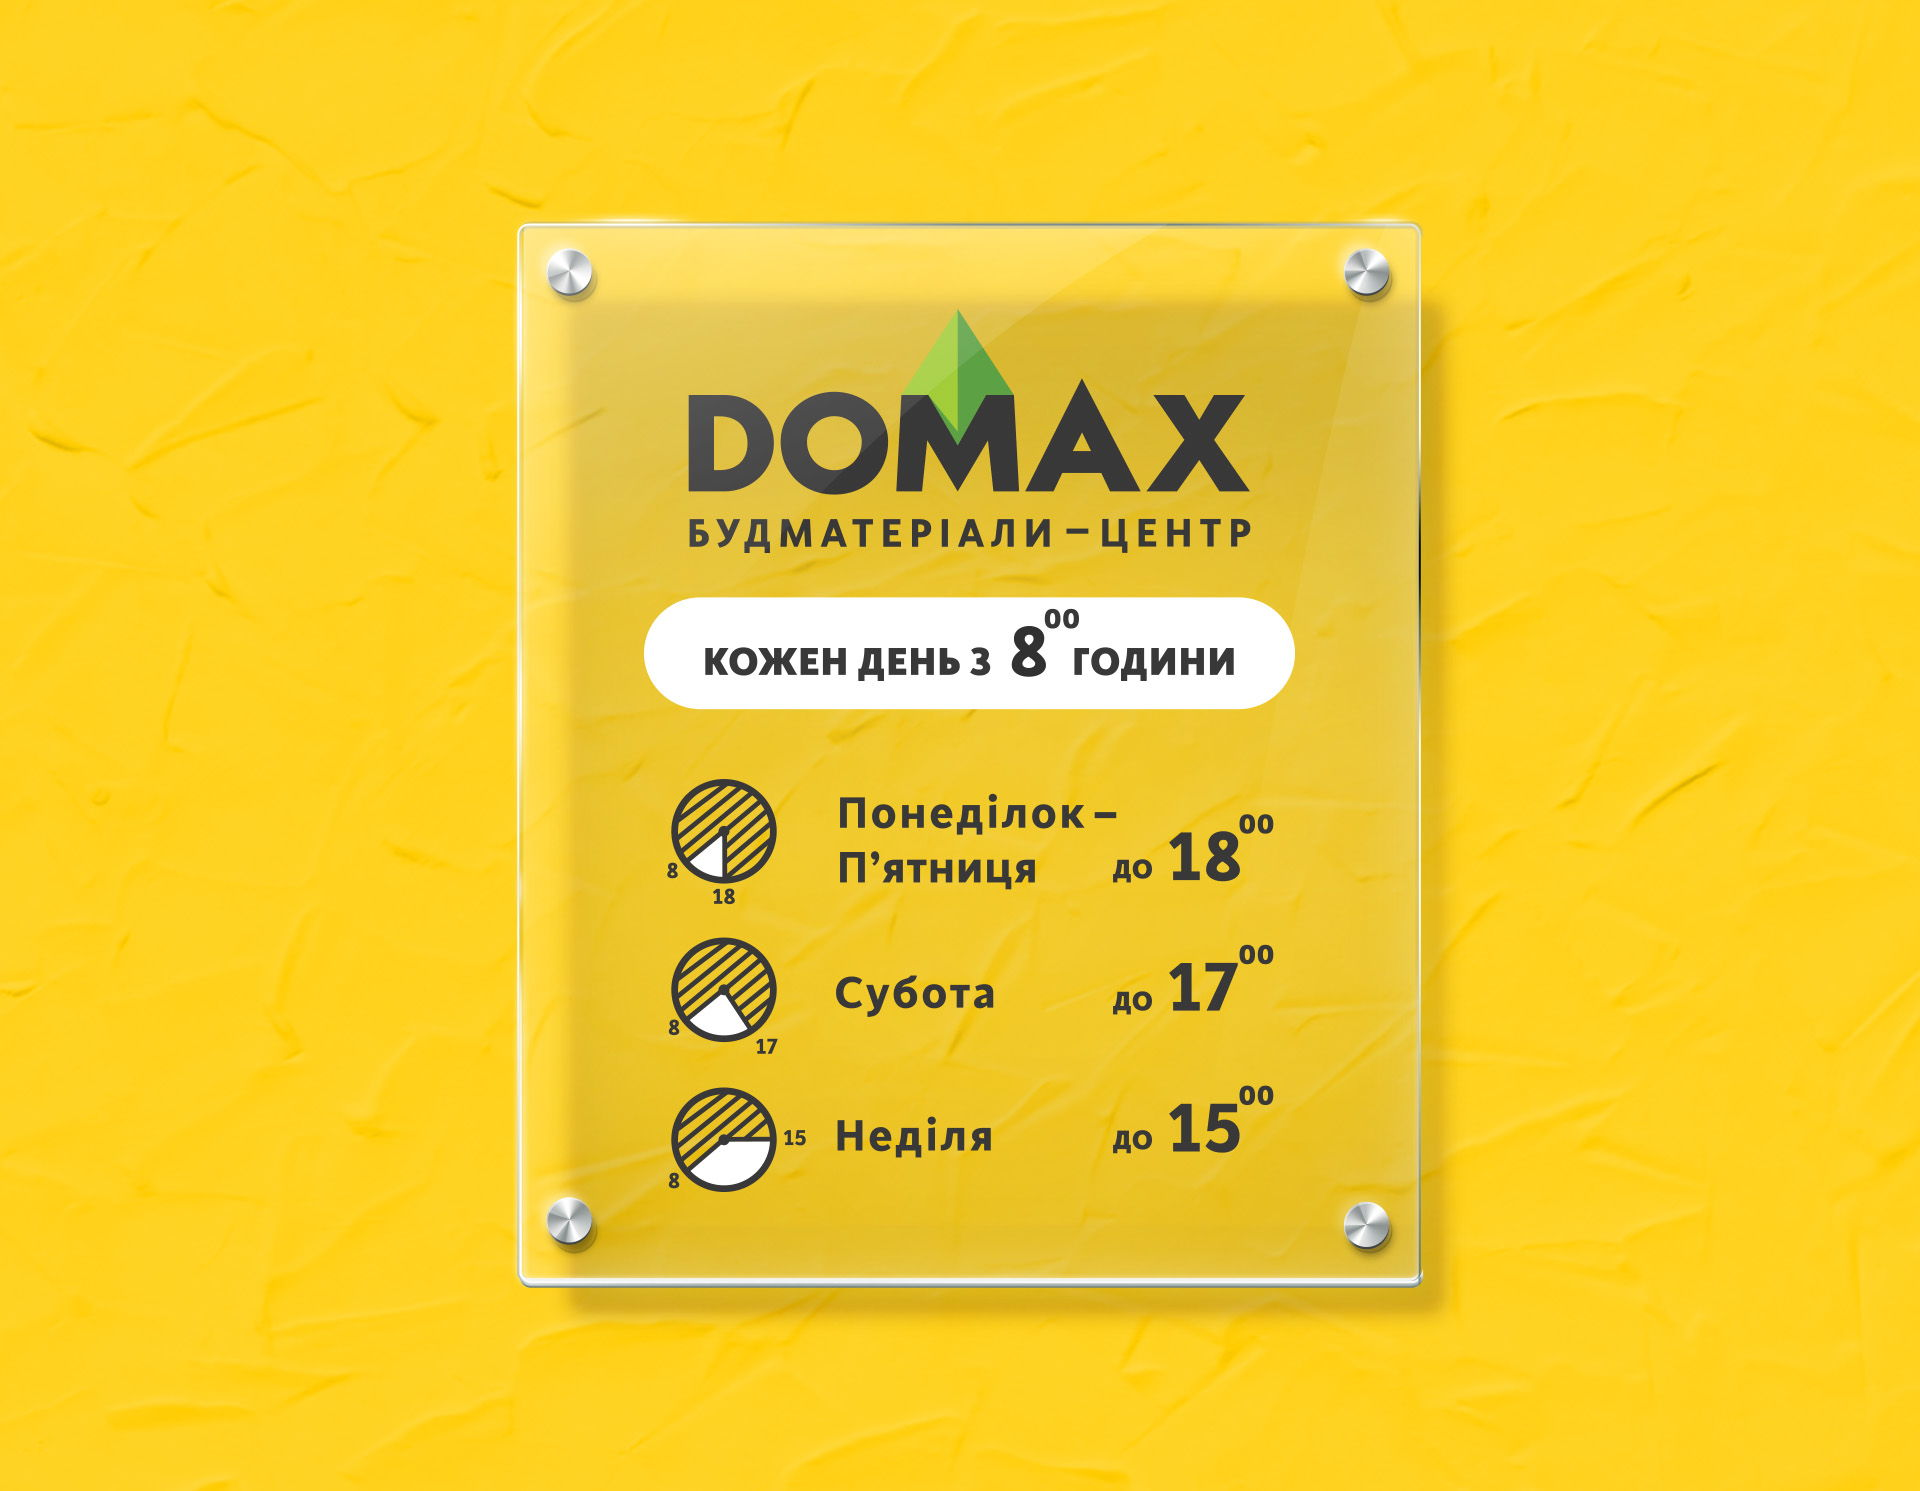 Design of the signboard строительного магазина, Building shop sign design